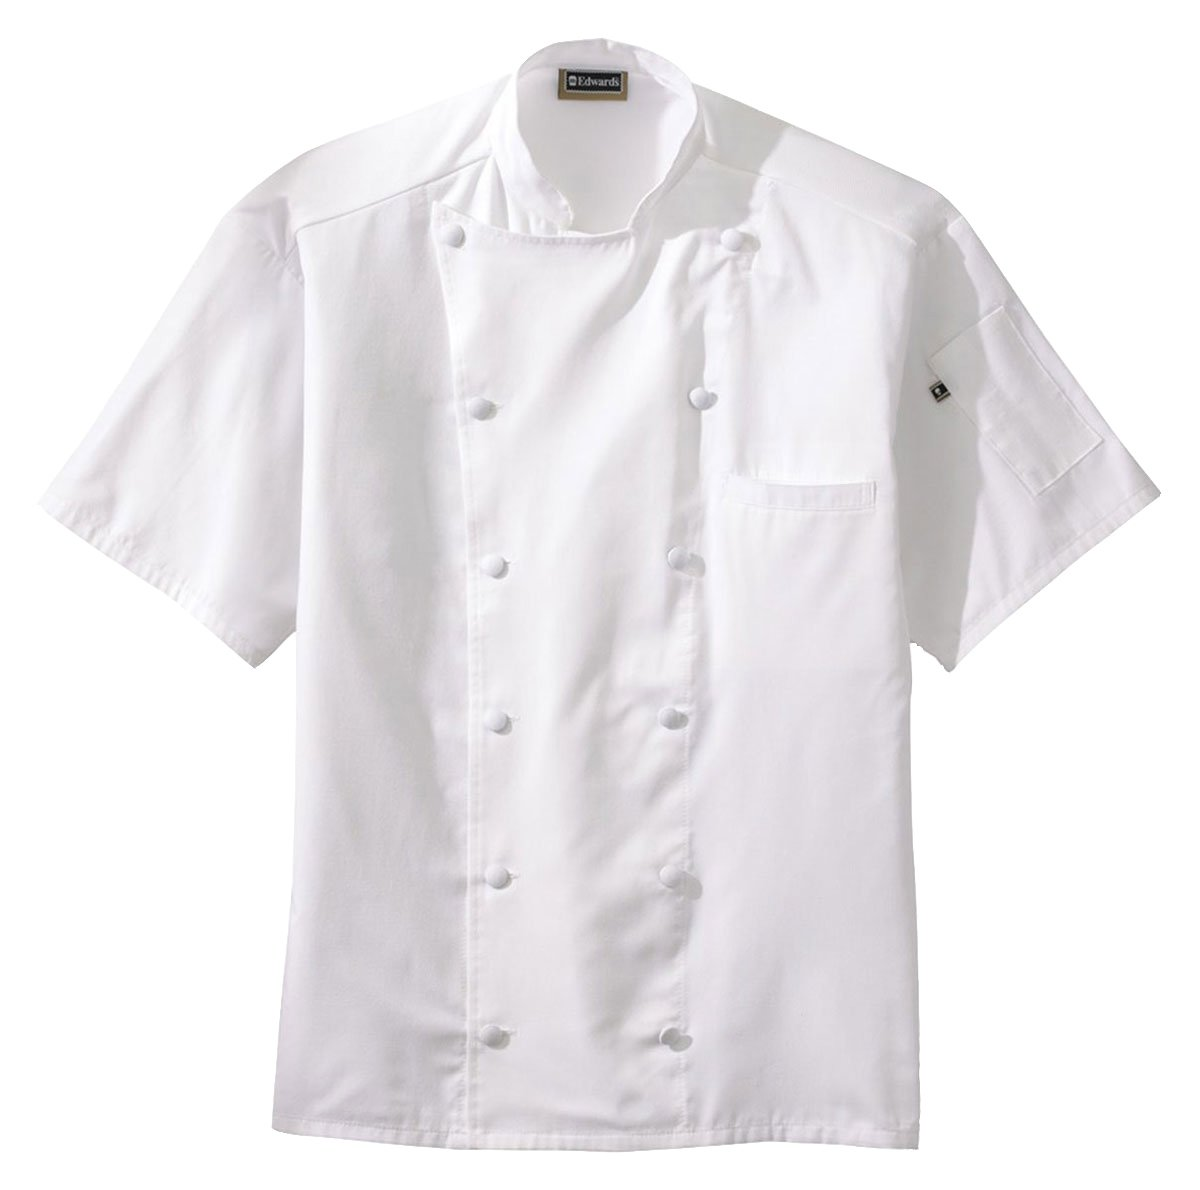 Ed Garments Classic Short Sleeves Chef Coat with Back Mesh, WHITE, Medium by Edwards Garment